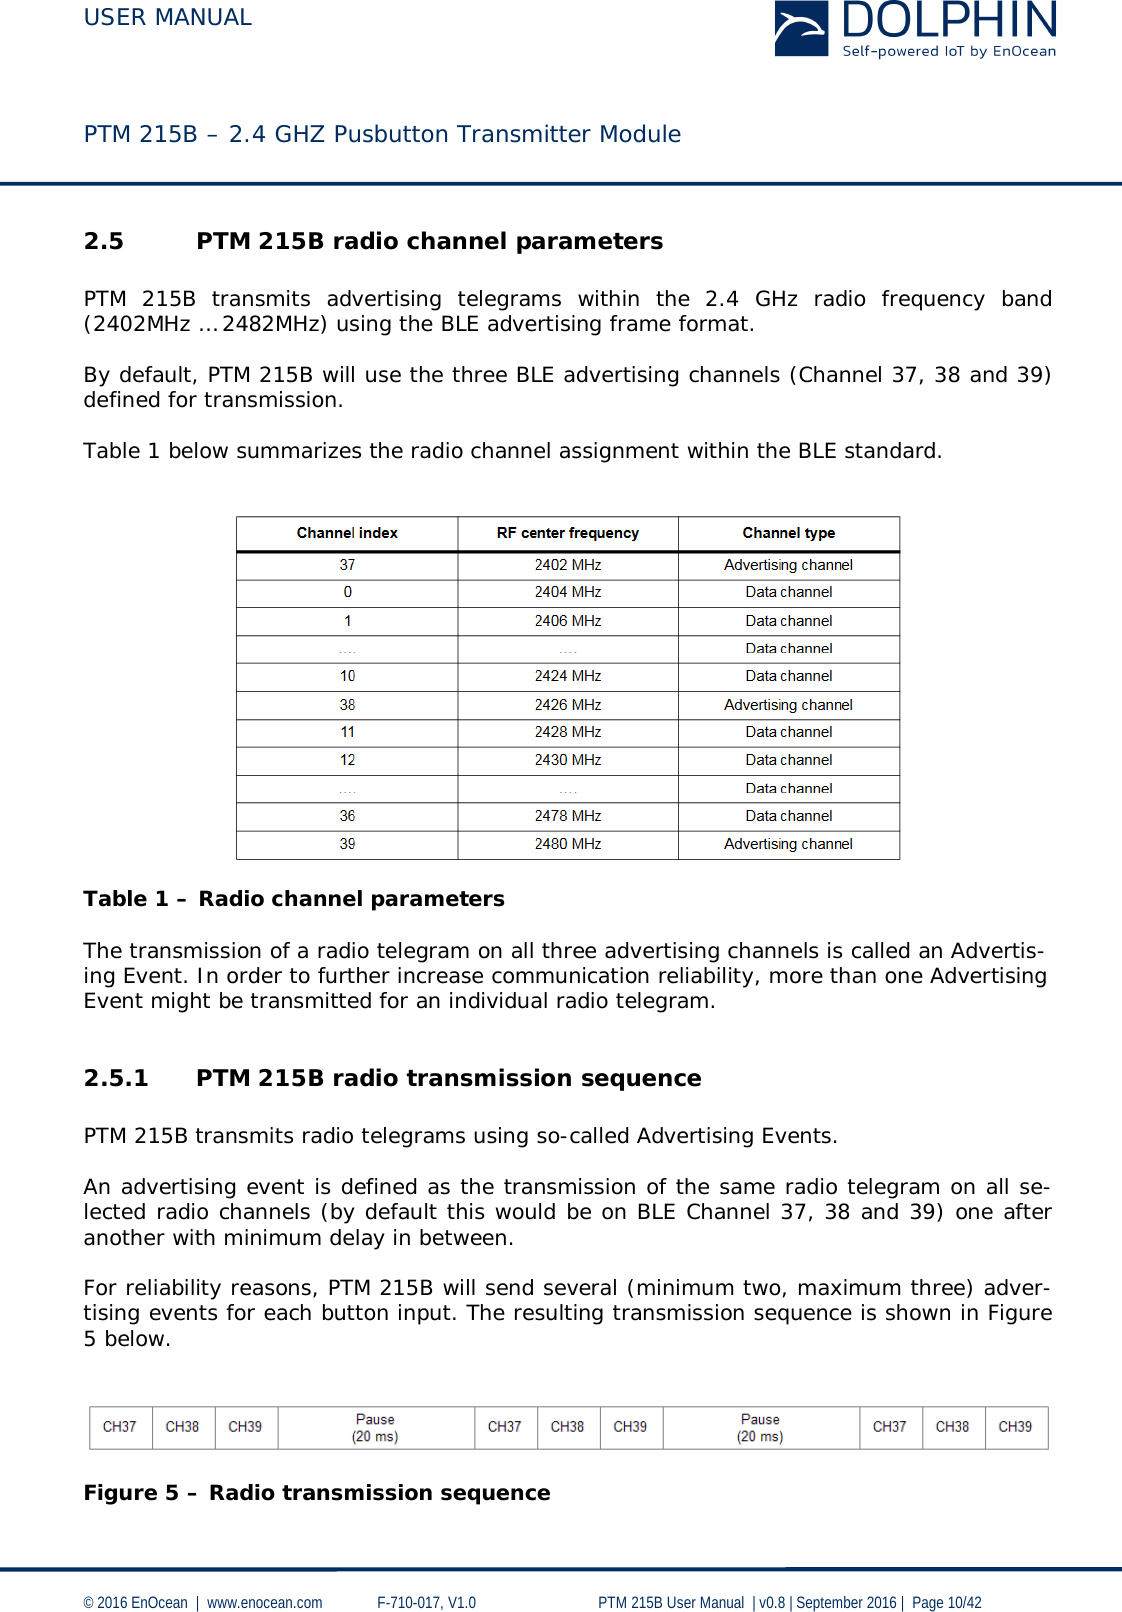 USER MANUAL    PTM 215B – 2.4 GHZ Pusbutton Transmitter Module  © 2016 EnOcean     www.enocean.com   F-710-017, V1.0        PTM 215B User Manual    v0.8   September 2016    Page 10/42  2.5 PTM 215B radio channel parameters   PTM 215B transmits advertising telegrams within the 2.4 GHz radio frequency band (2402MHz … 2482MHz) using the BLE advertising frame format.  By default, PTM 215B will use the three BLE advertising channels (Channel 37, 38 and 39) defined for transmission.  Table 1 below summarizes the radio channel assignment within the BLE standard.     Table 1 – Radio channel parameters  The transmission of a radio telegram on all three advertising channels is called an Advertis-ing Event. In order to further increase communication reliability, more than one Advertising Event might be transmitted for an individual radio telegram.   2.5.1 PTM 215B radio transmission sequence  PTM 215B transmits radio telegrams using so-called Advertising Events.   An advertising event is defined as the transmission of the same radio telegram on all se-lected radio channels (by default this would be on BLE Channel 37, 38 and 39) one after another with minimum delay in between.  For reliability reasons, PTM 215B will send several (minimum two, maximum three) adver-tising events for each button input. The resulting transmission sequence is shown in Figure 5 below.     Figure 5 – Radio transmission sequence